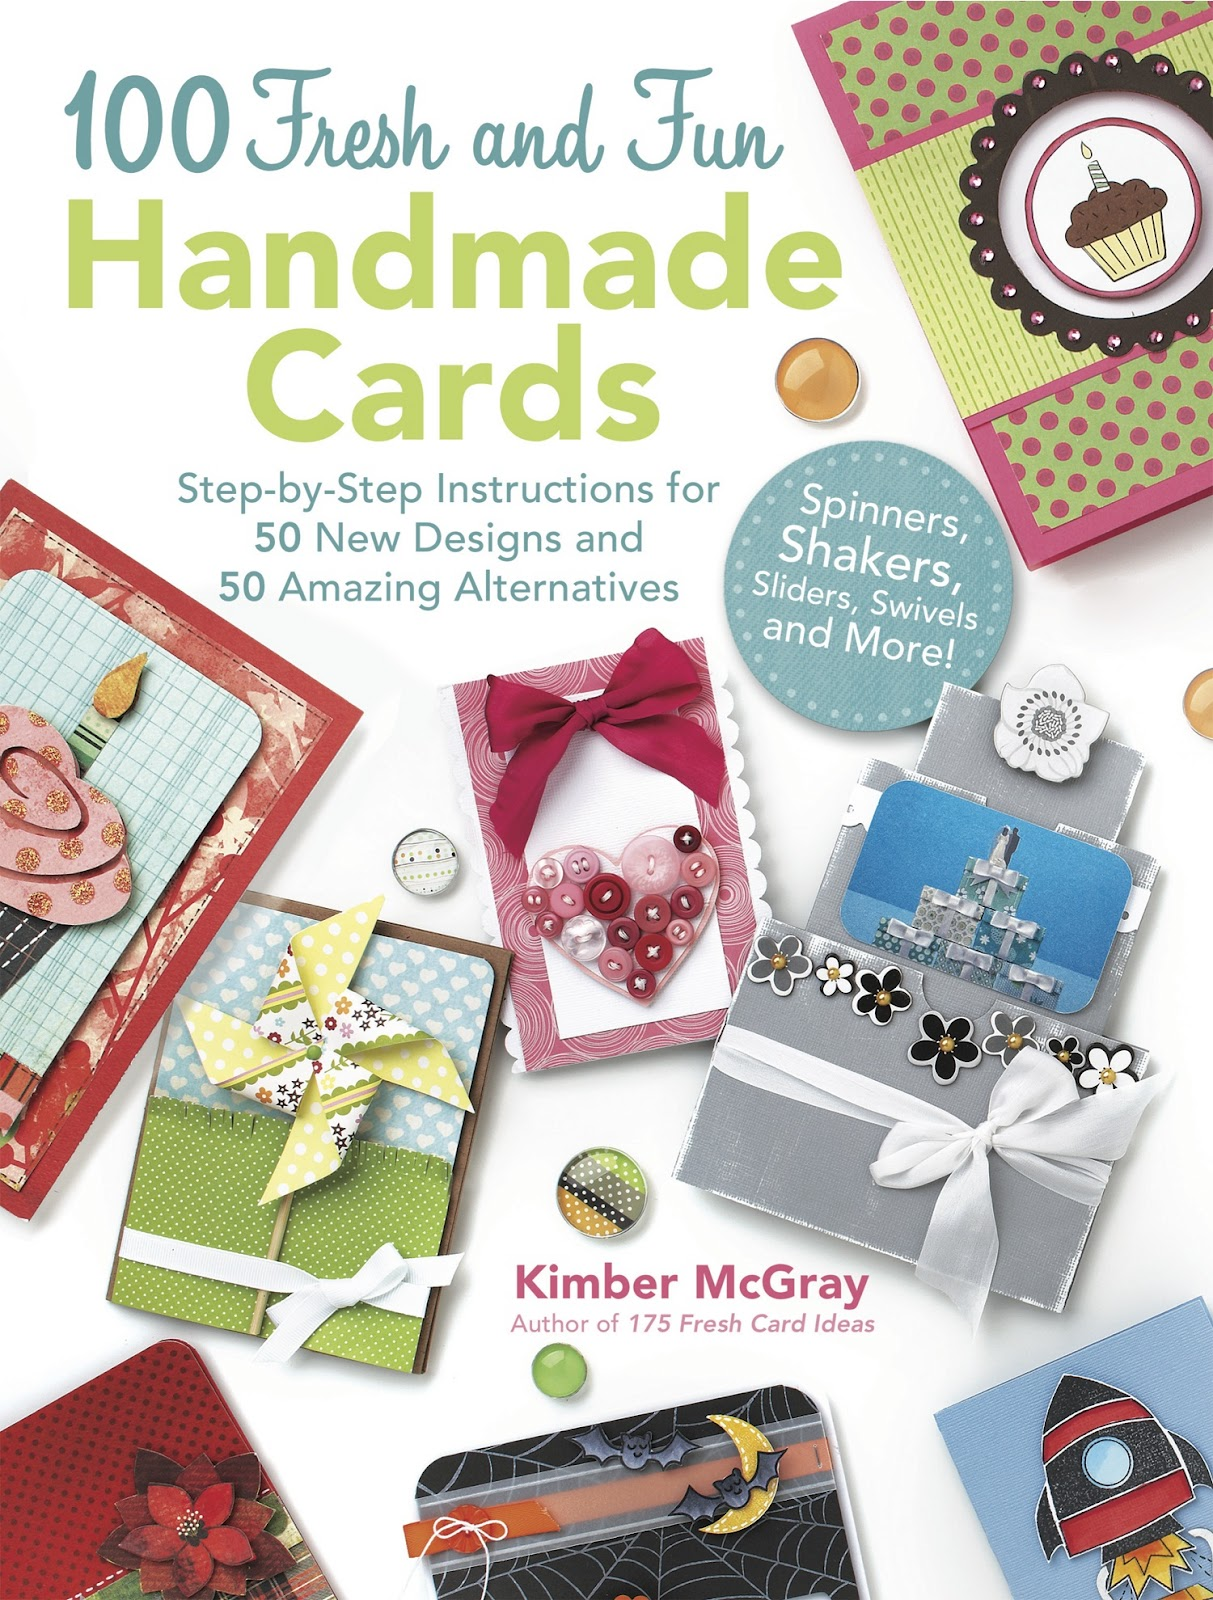 Whirlwind: 100 Fresh and Fun Handmade Cards GIVEAWAY Blog Hop!